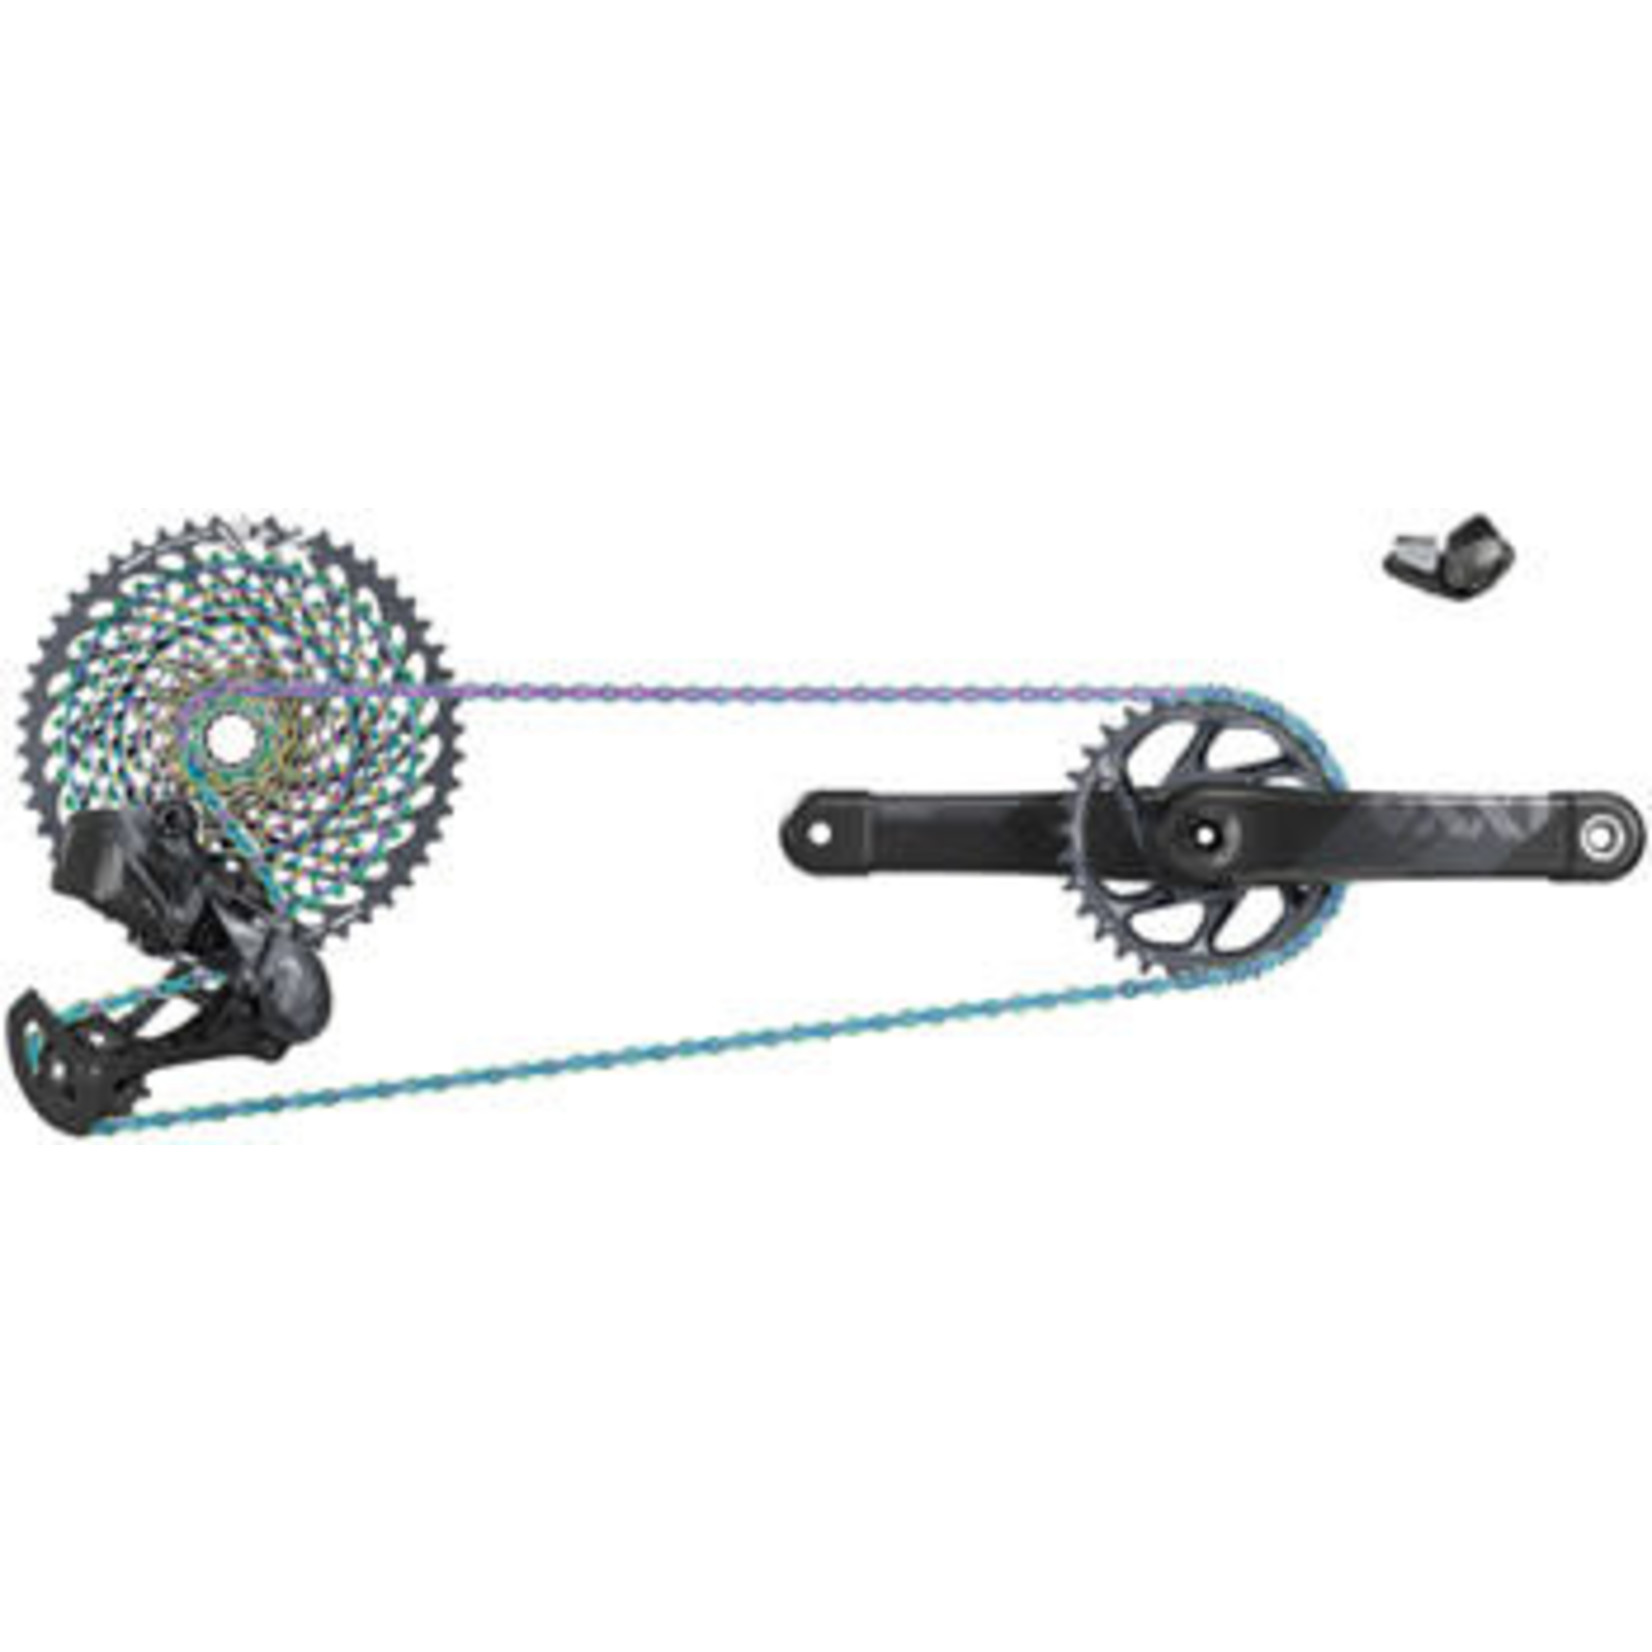 SRAM SRAM XX1 Eagle AXS Electronic Groupset: 175mm Boost 34t DUB Crank, Trigger Shifter, Rear Derailleur, 12 Speed 10-50t Cassette and Chain